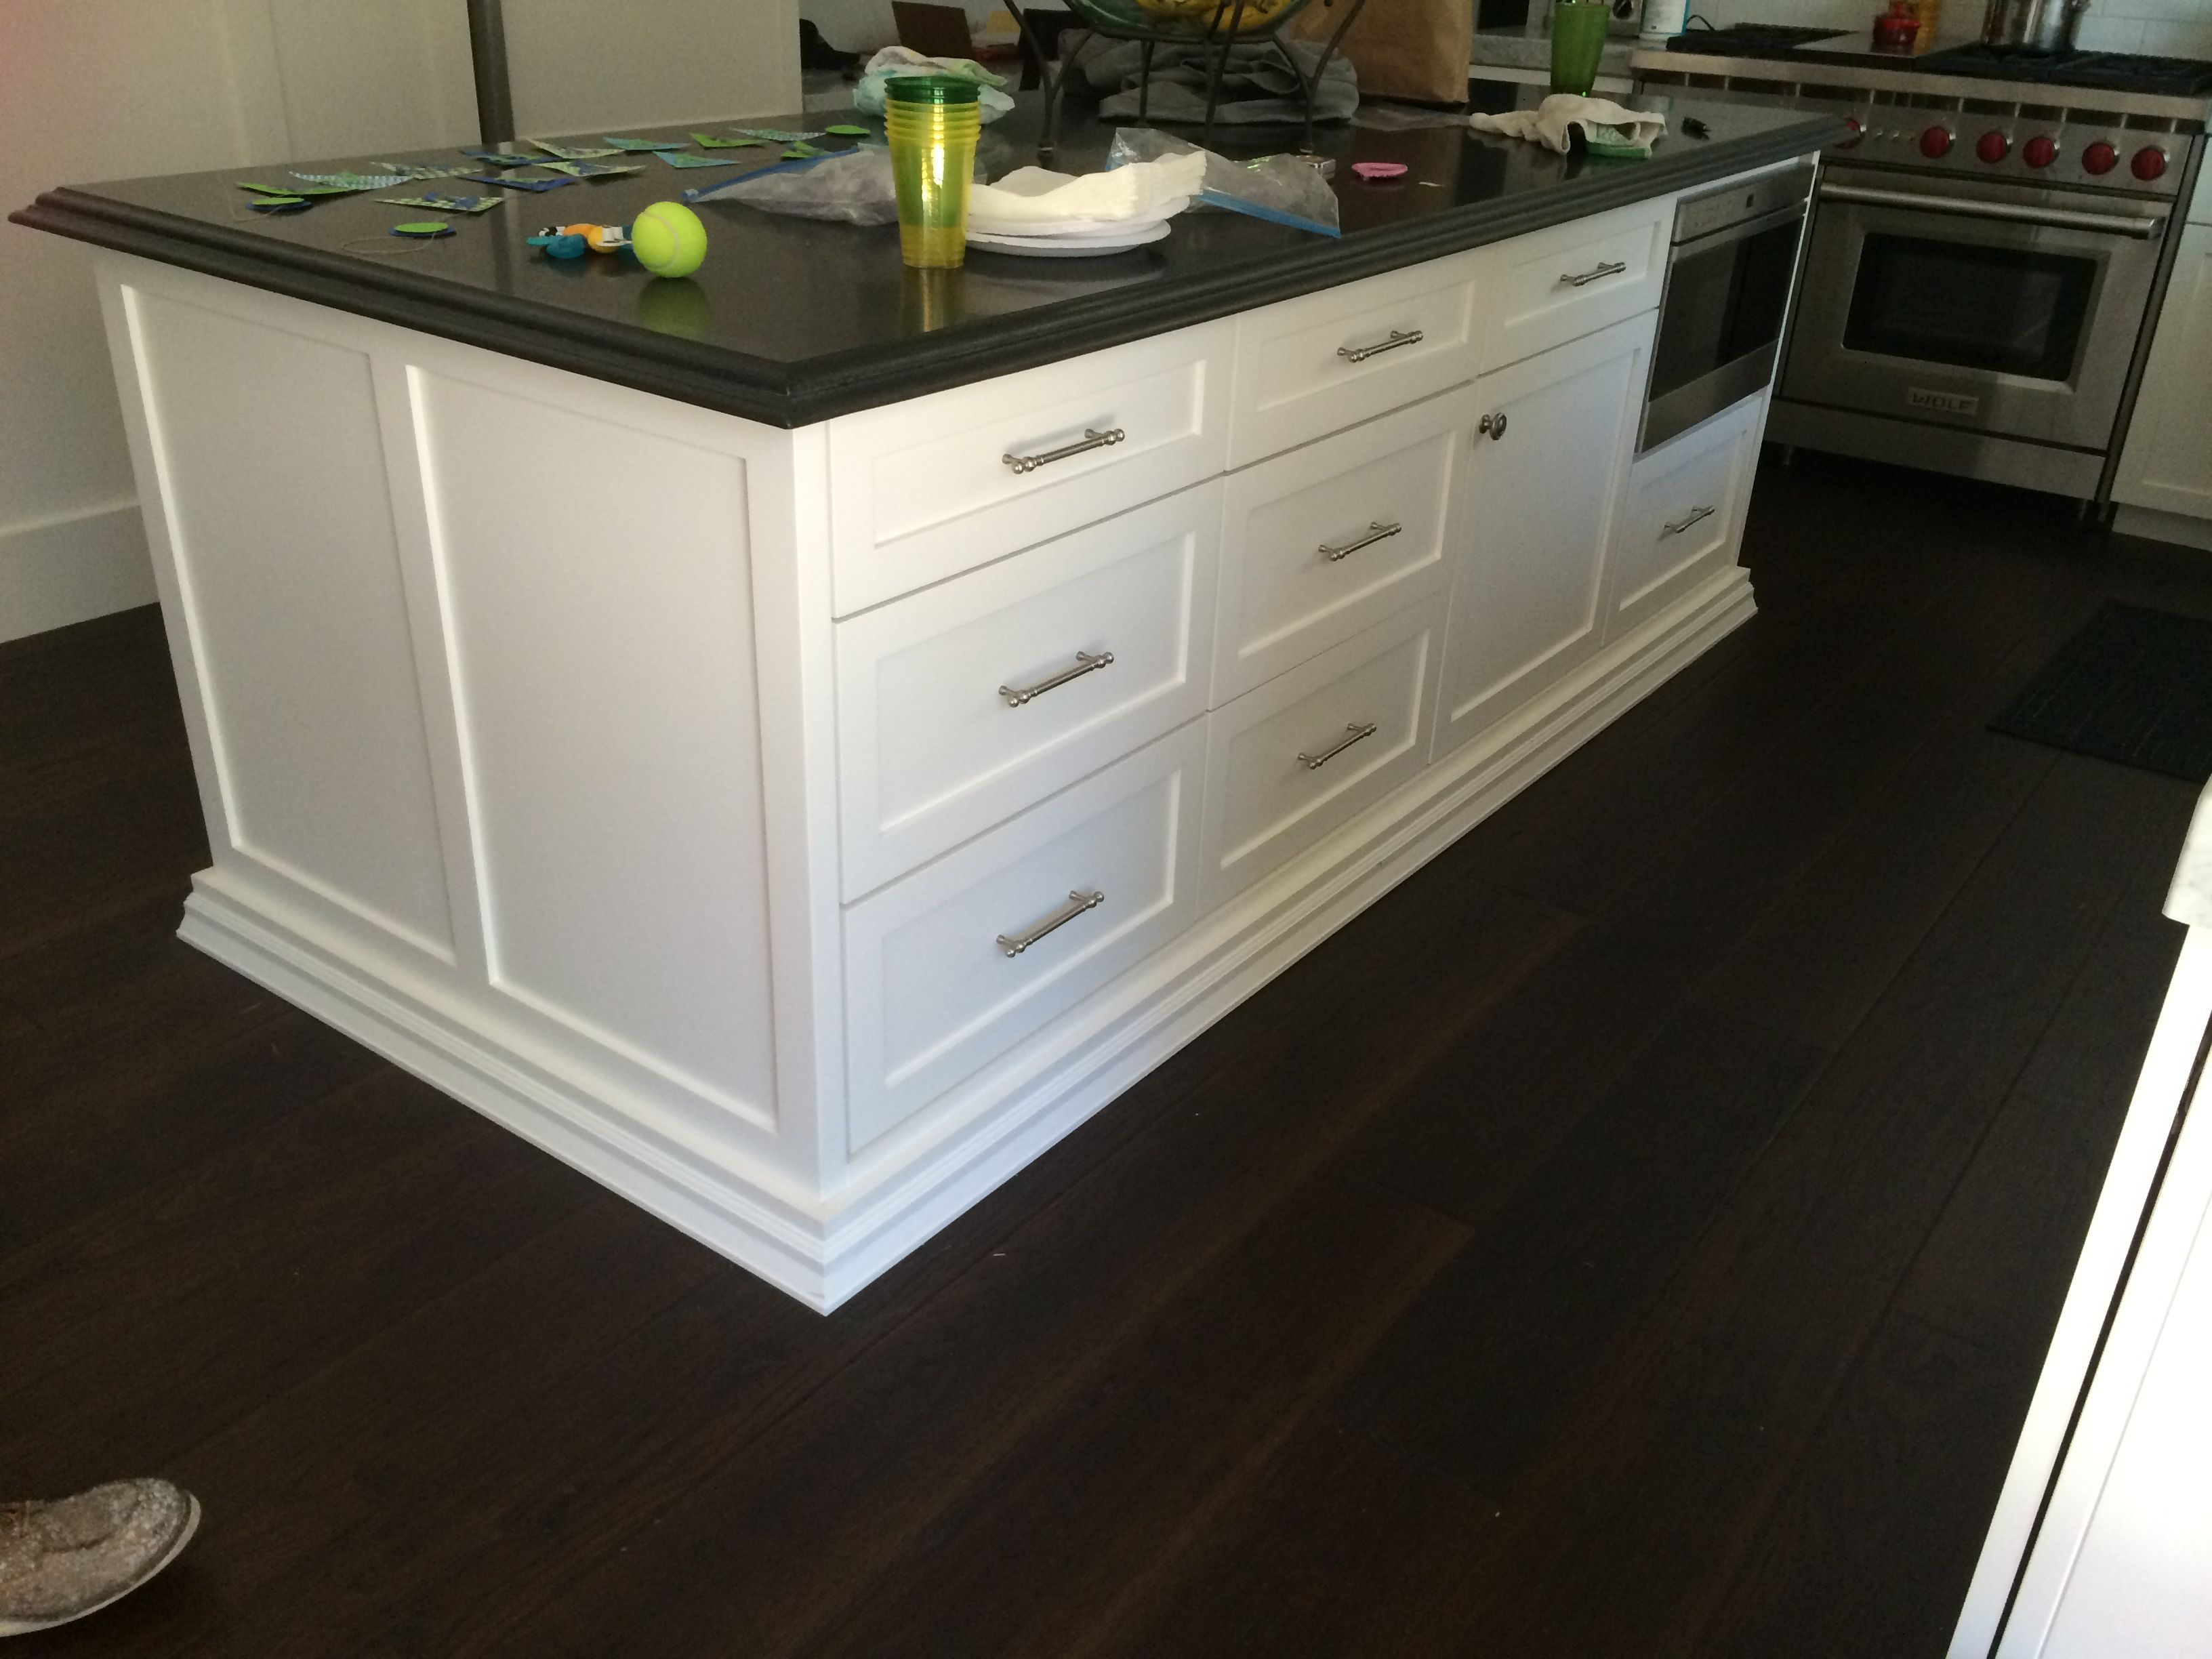 Full Overlay Cabinets Google Search In 2020 Framed Kitchen Cabinets Inset Cabinets New Kitchen Doors